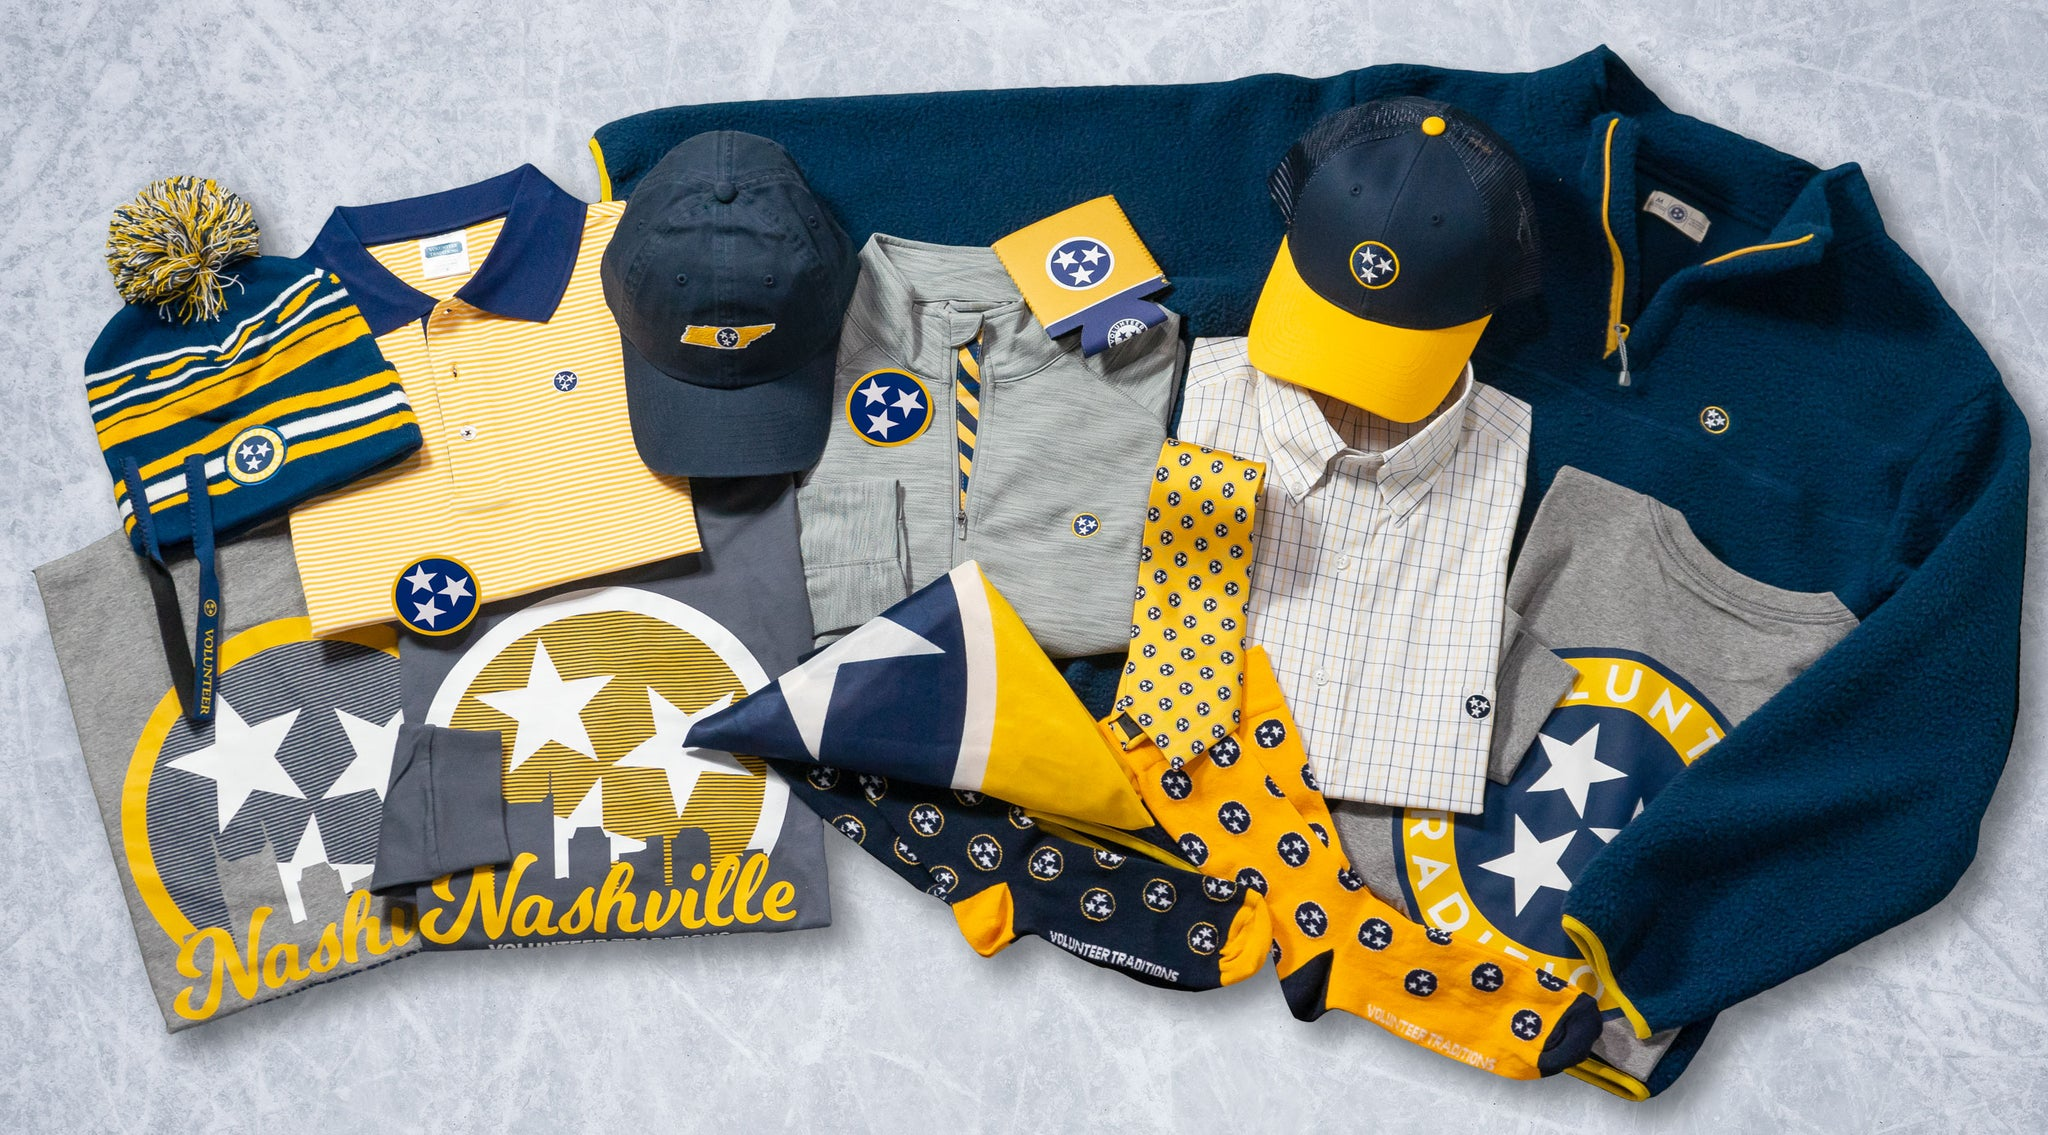 navy gold tennessee flag tristar fleece hats tees polos clothing